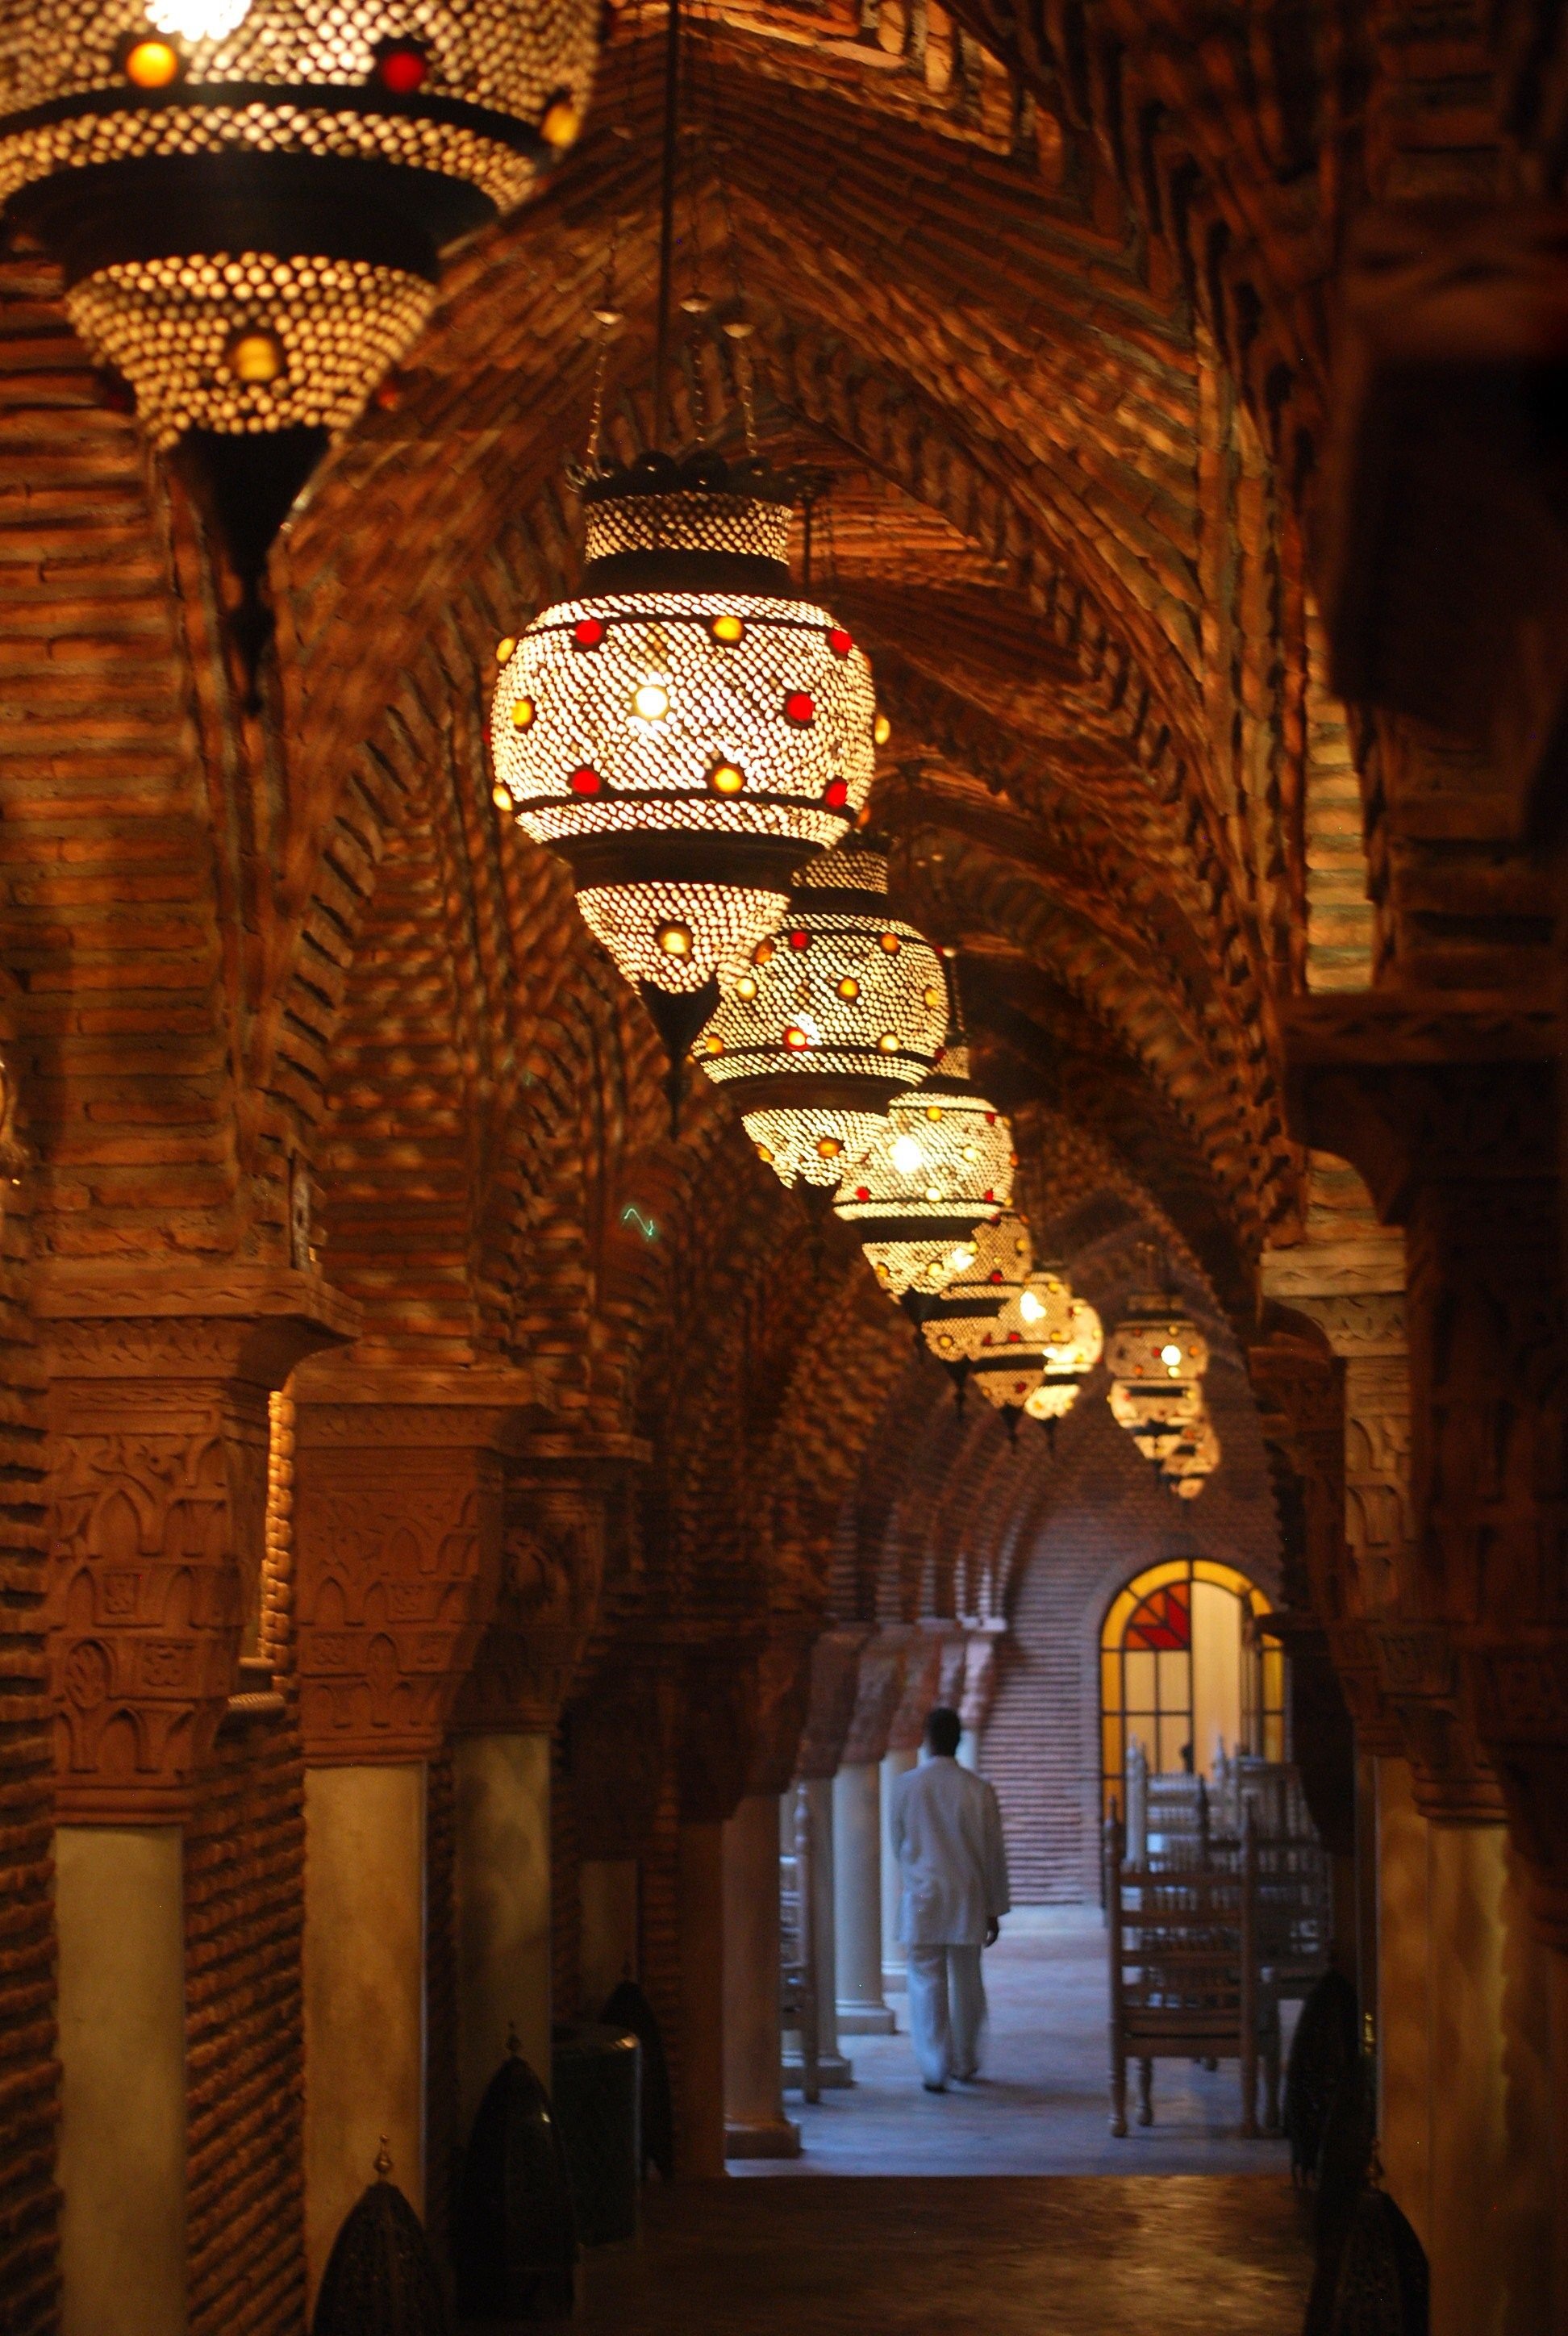 MOROCCO - La Sultana Marrakech is a collection of five riads in the heart of the Kasbah just metres from the royal palaces, museums and souks.